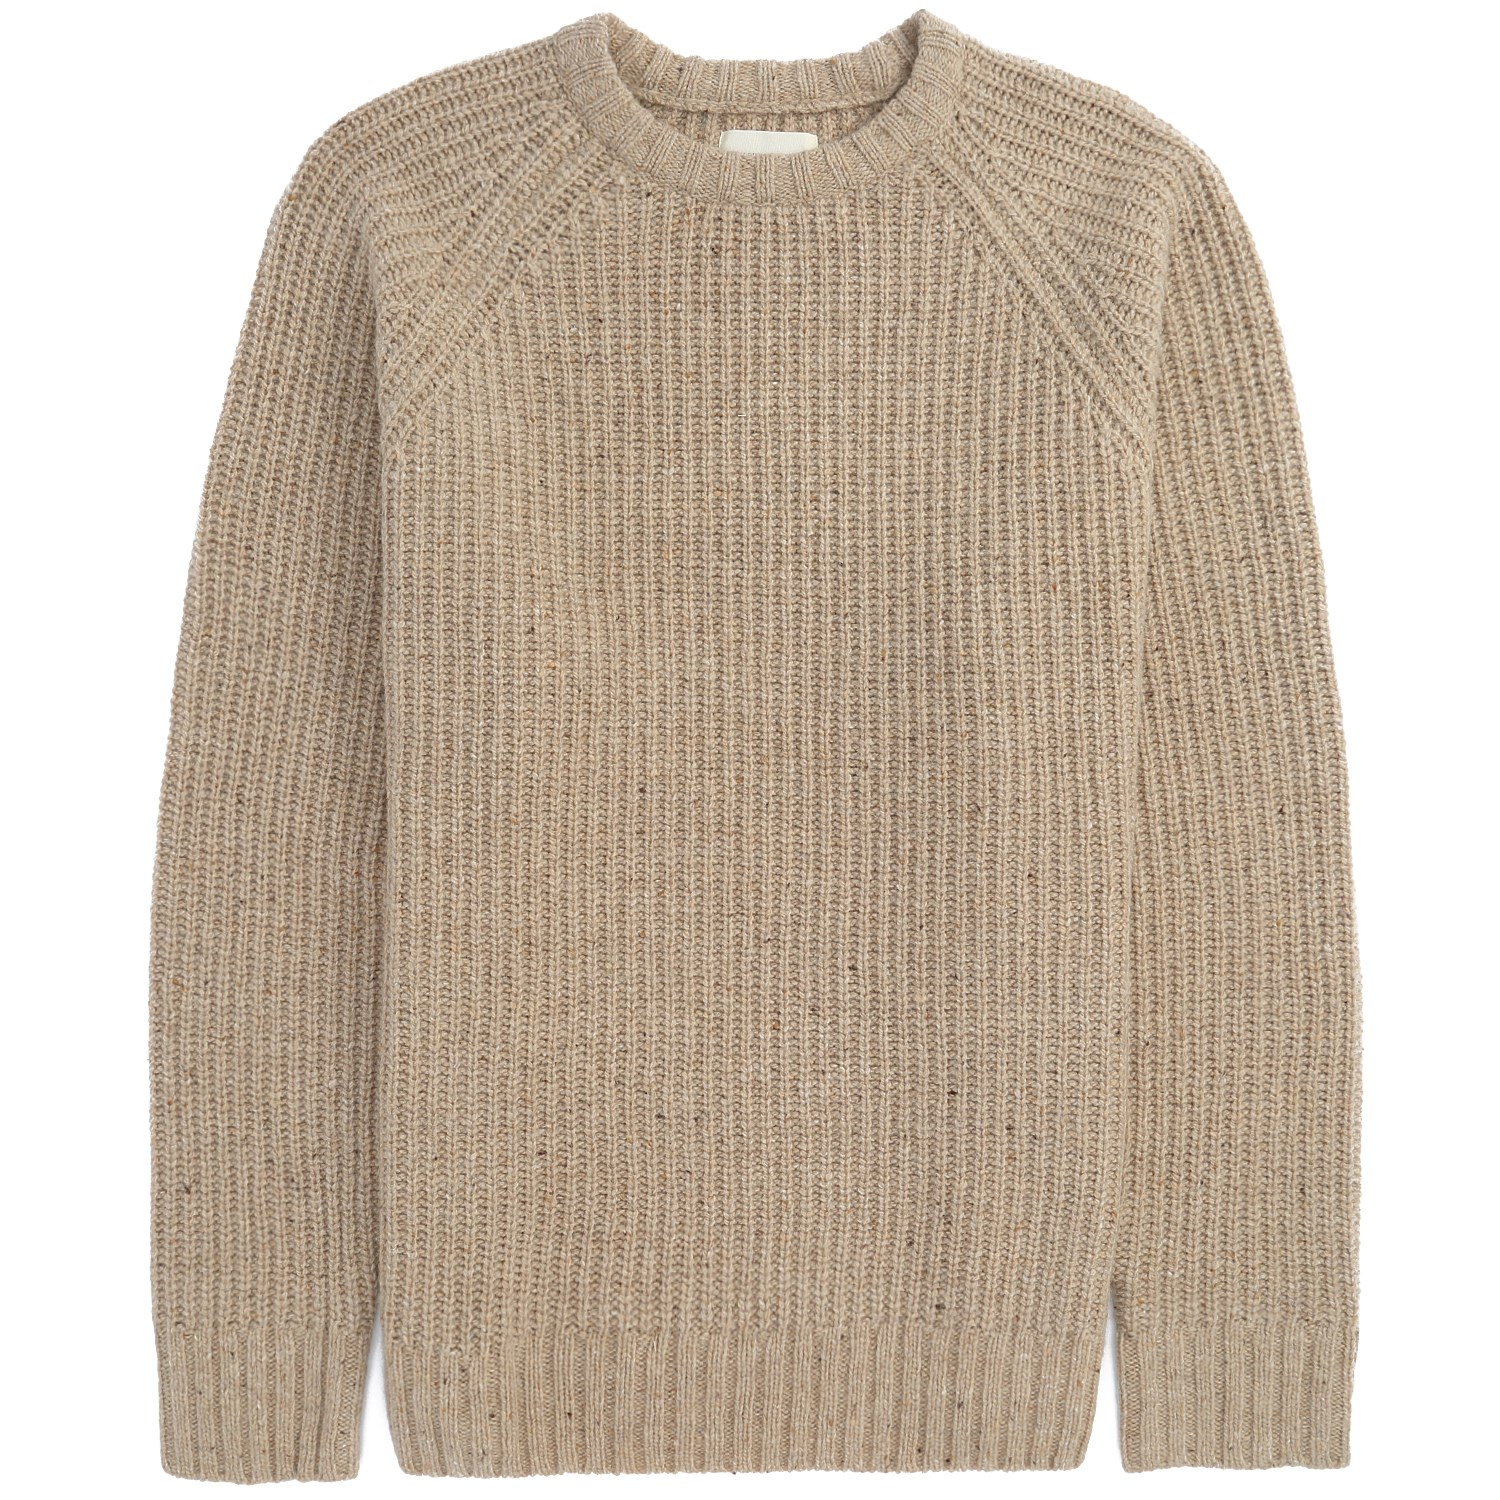 Obey Clothing Deering Sweater | evo outlet